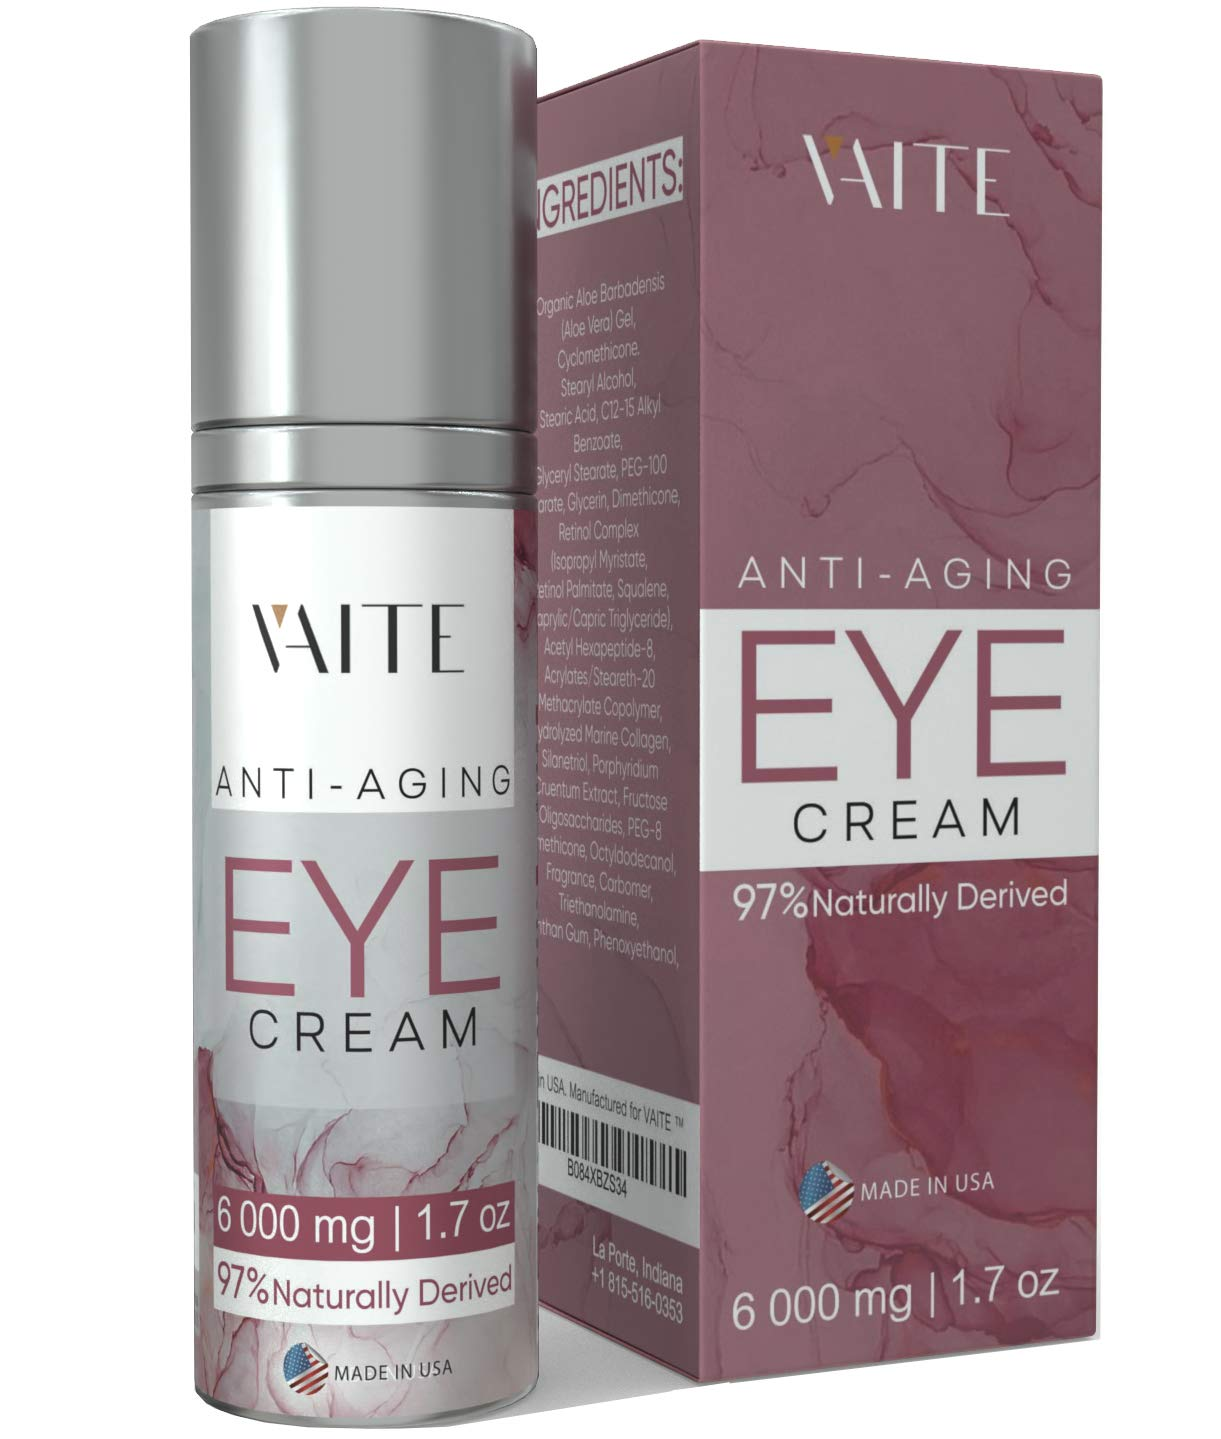 Eye Cream Treatment for Anti-Aging, Bags, Puffiness, Circles, Wrinkles, Dark Circles Under Eyes - Best Organic Natural Eye Gel For Men and Women with Hydrating Serum and Vitamin C